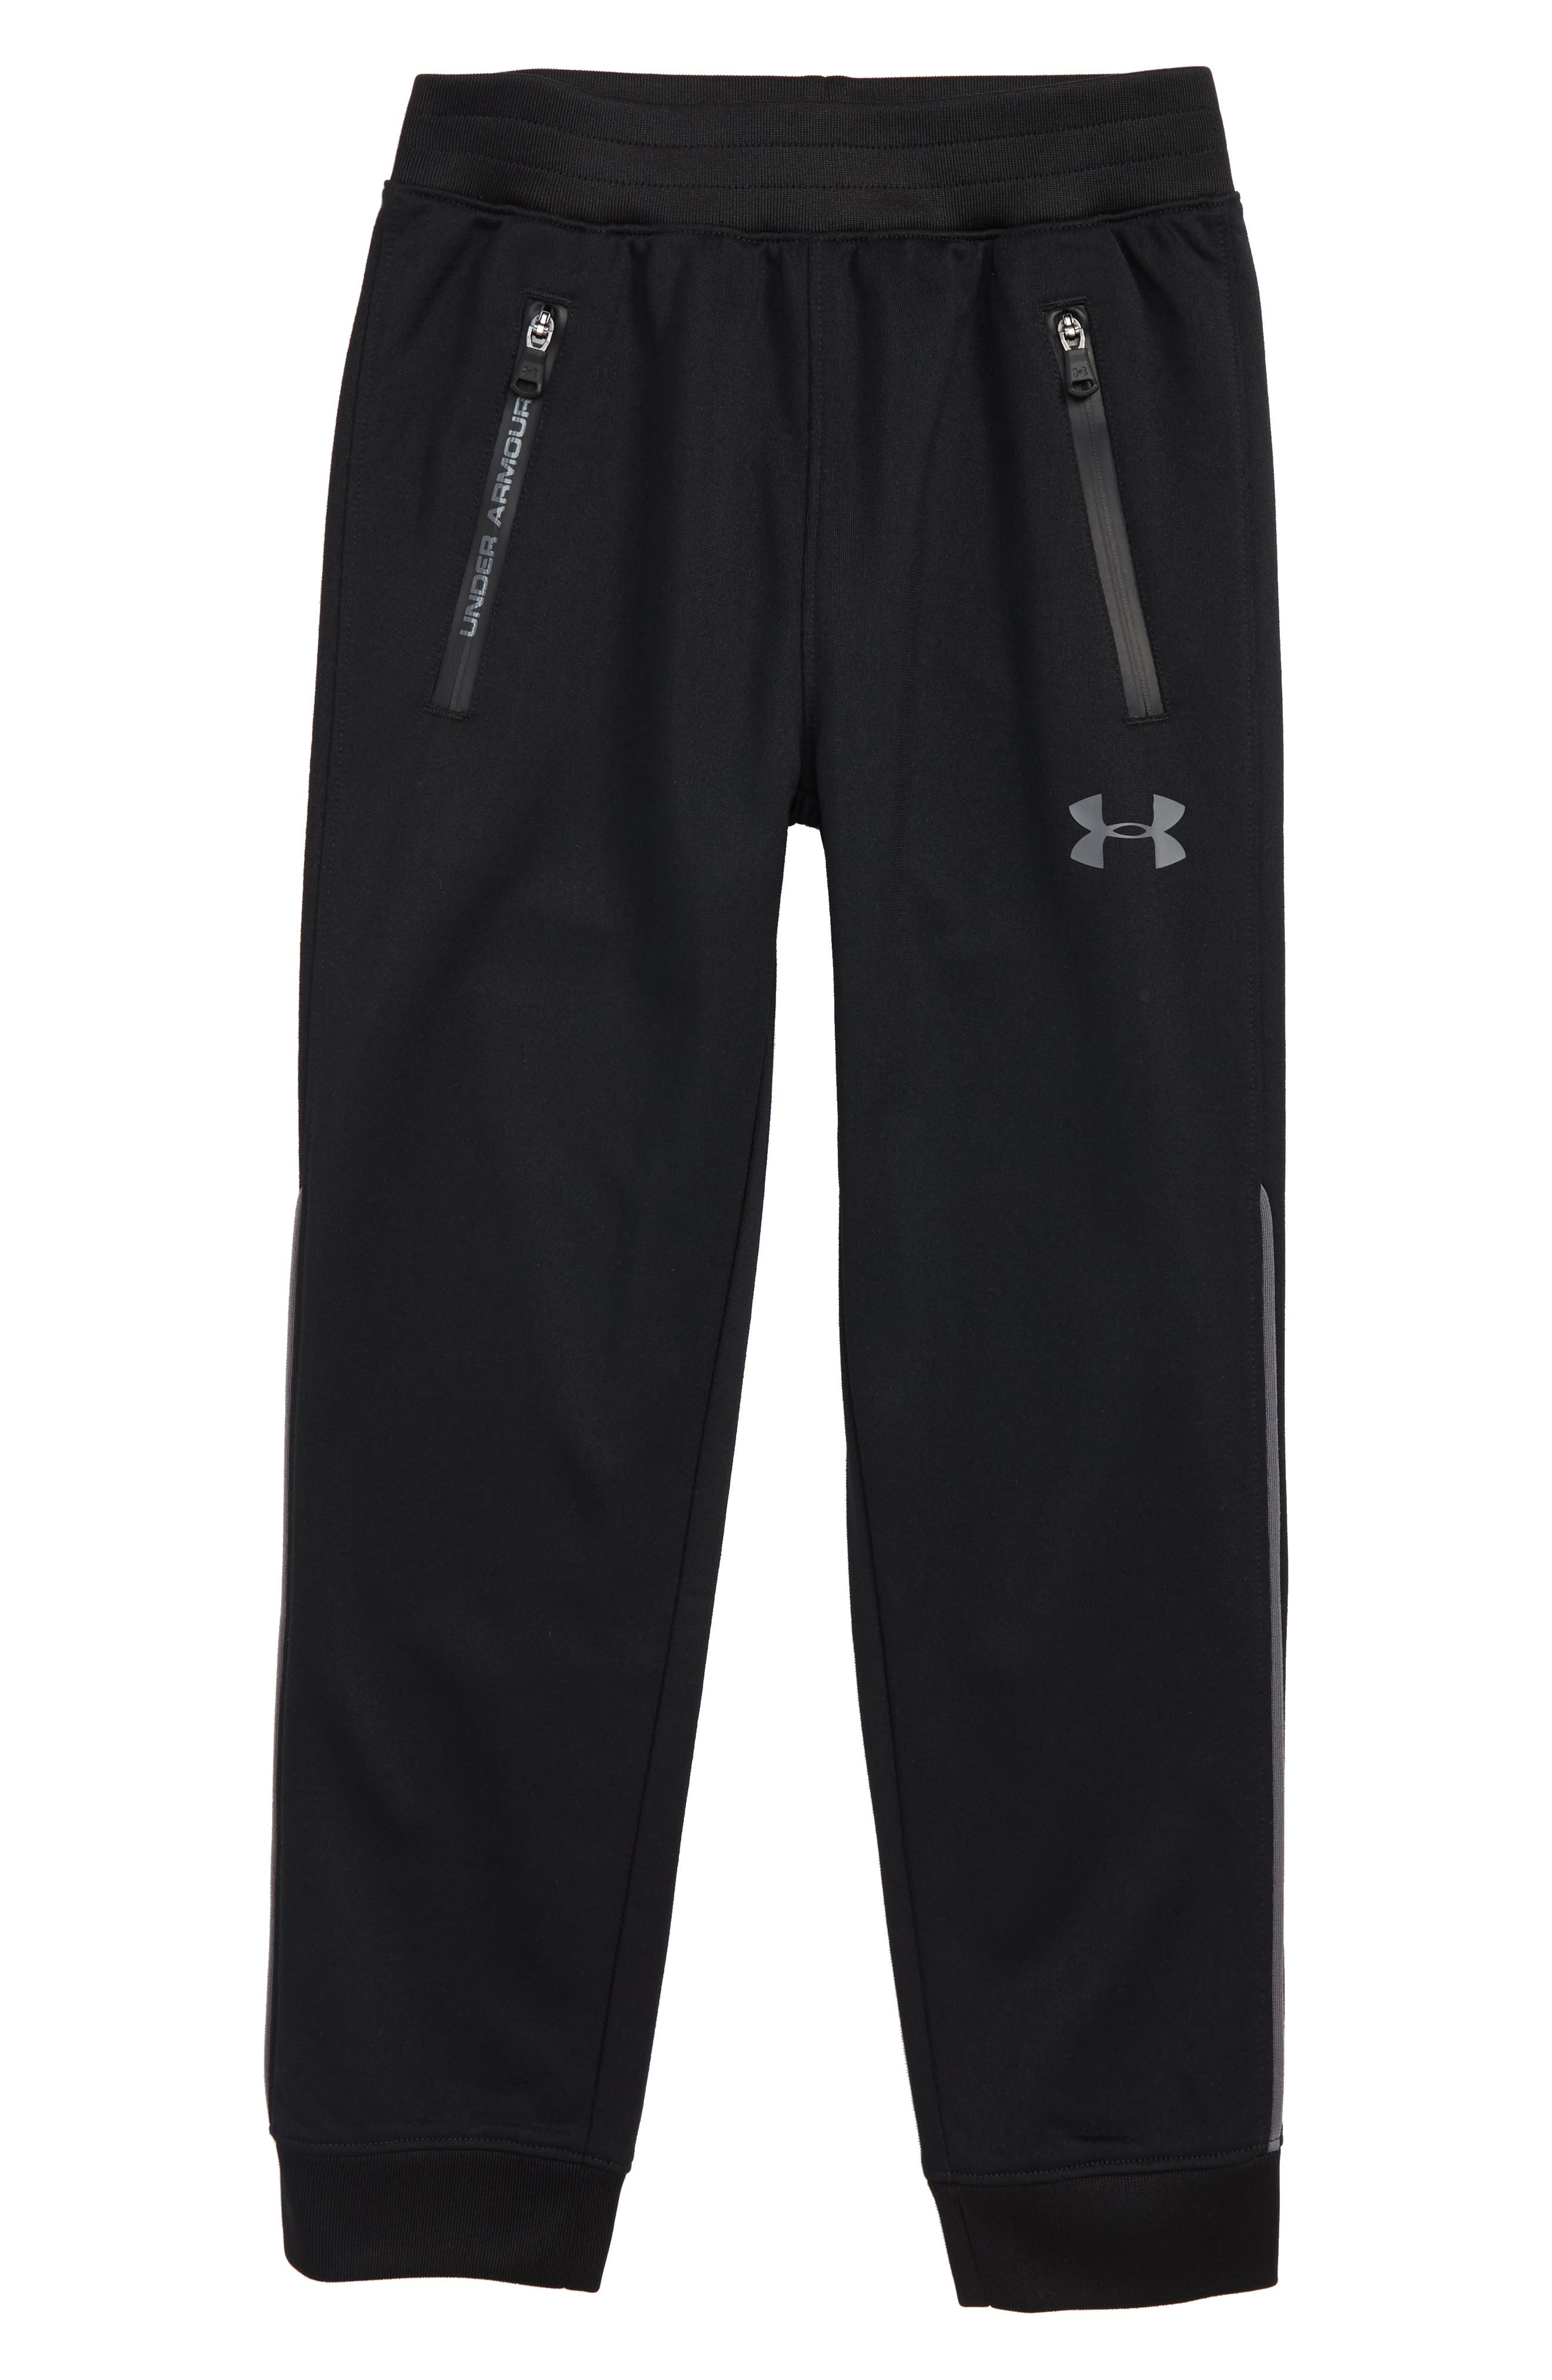 UNDER ARMOUR Pennant 2.0 Pants, Main, color, BLACK